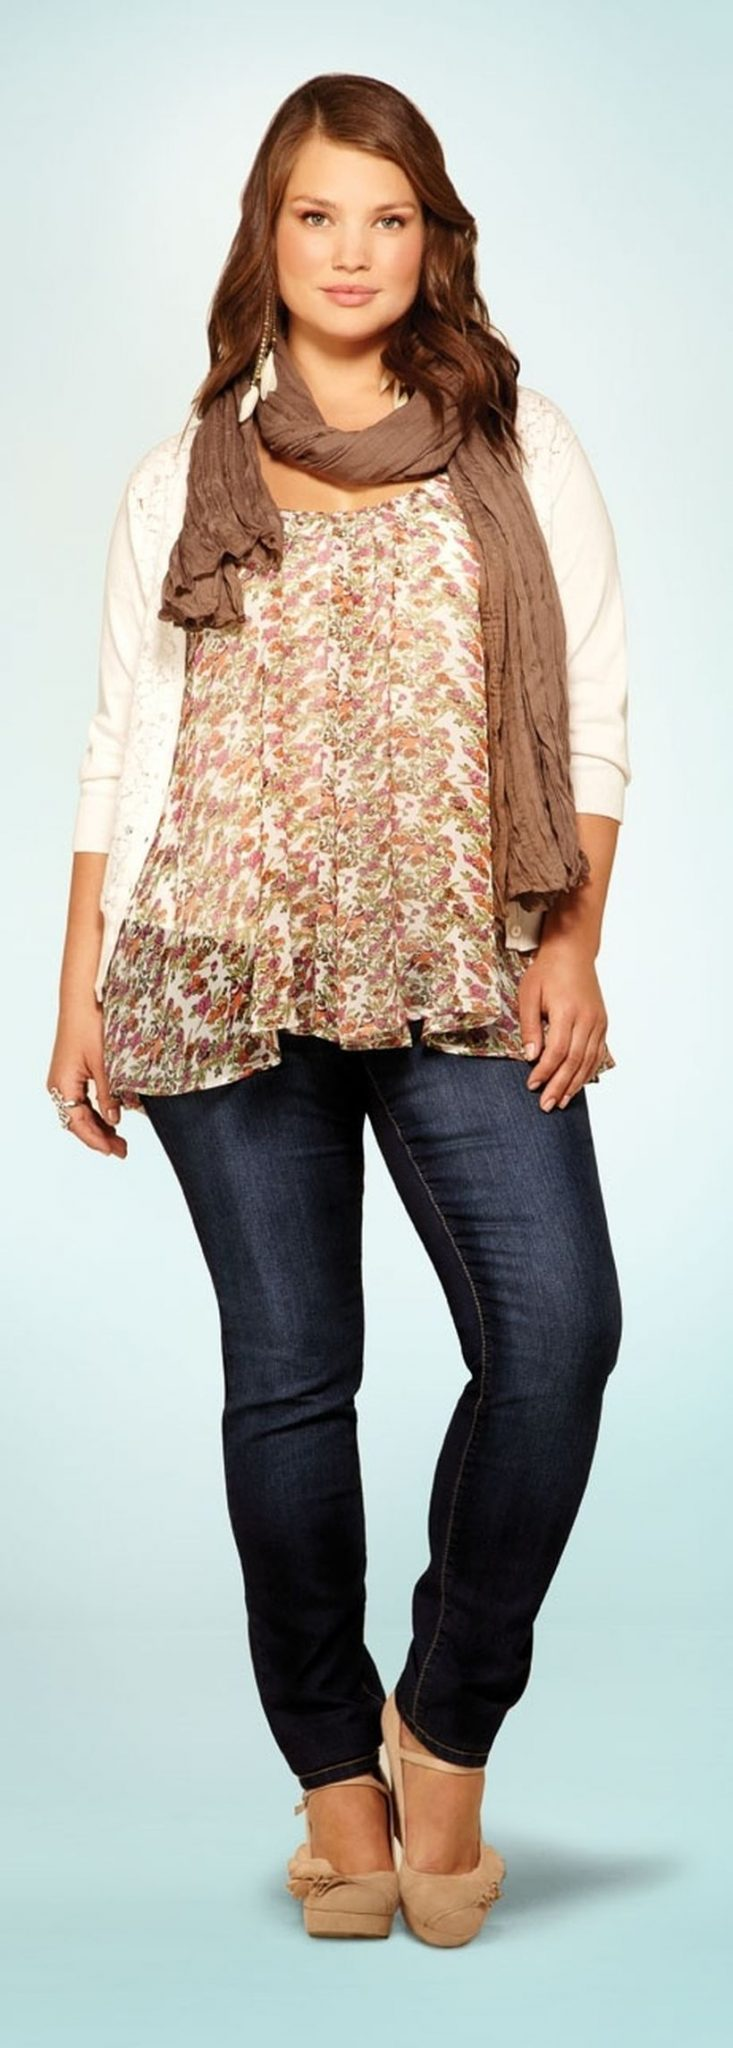 Plus size boho outfit style 1